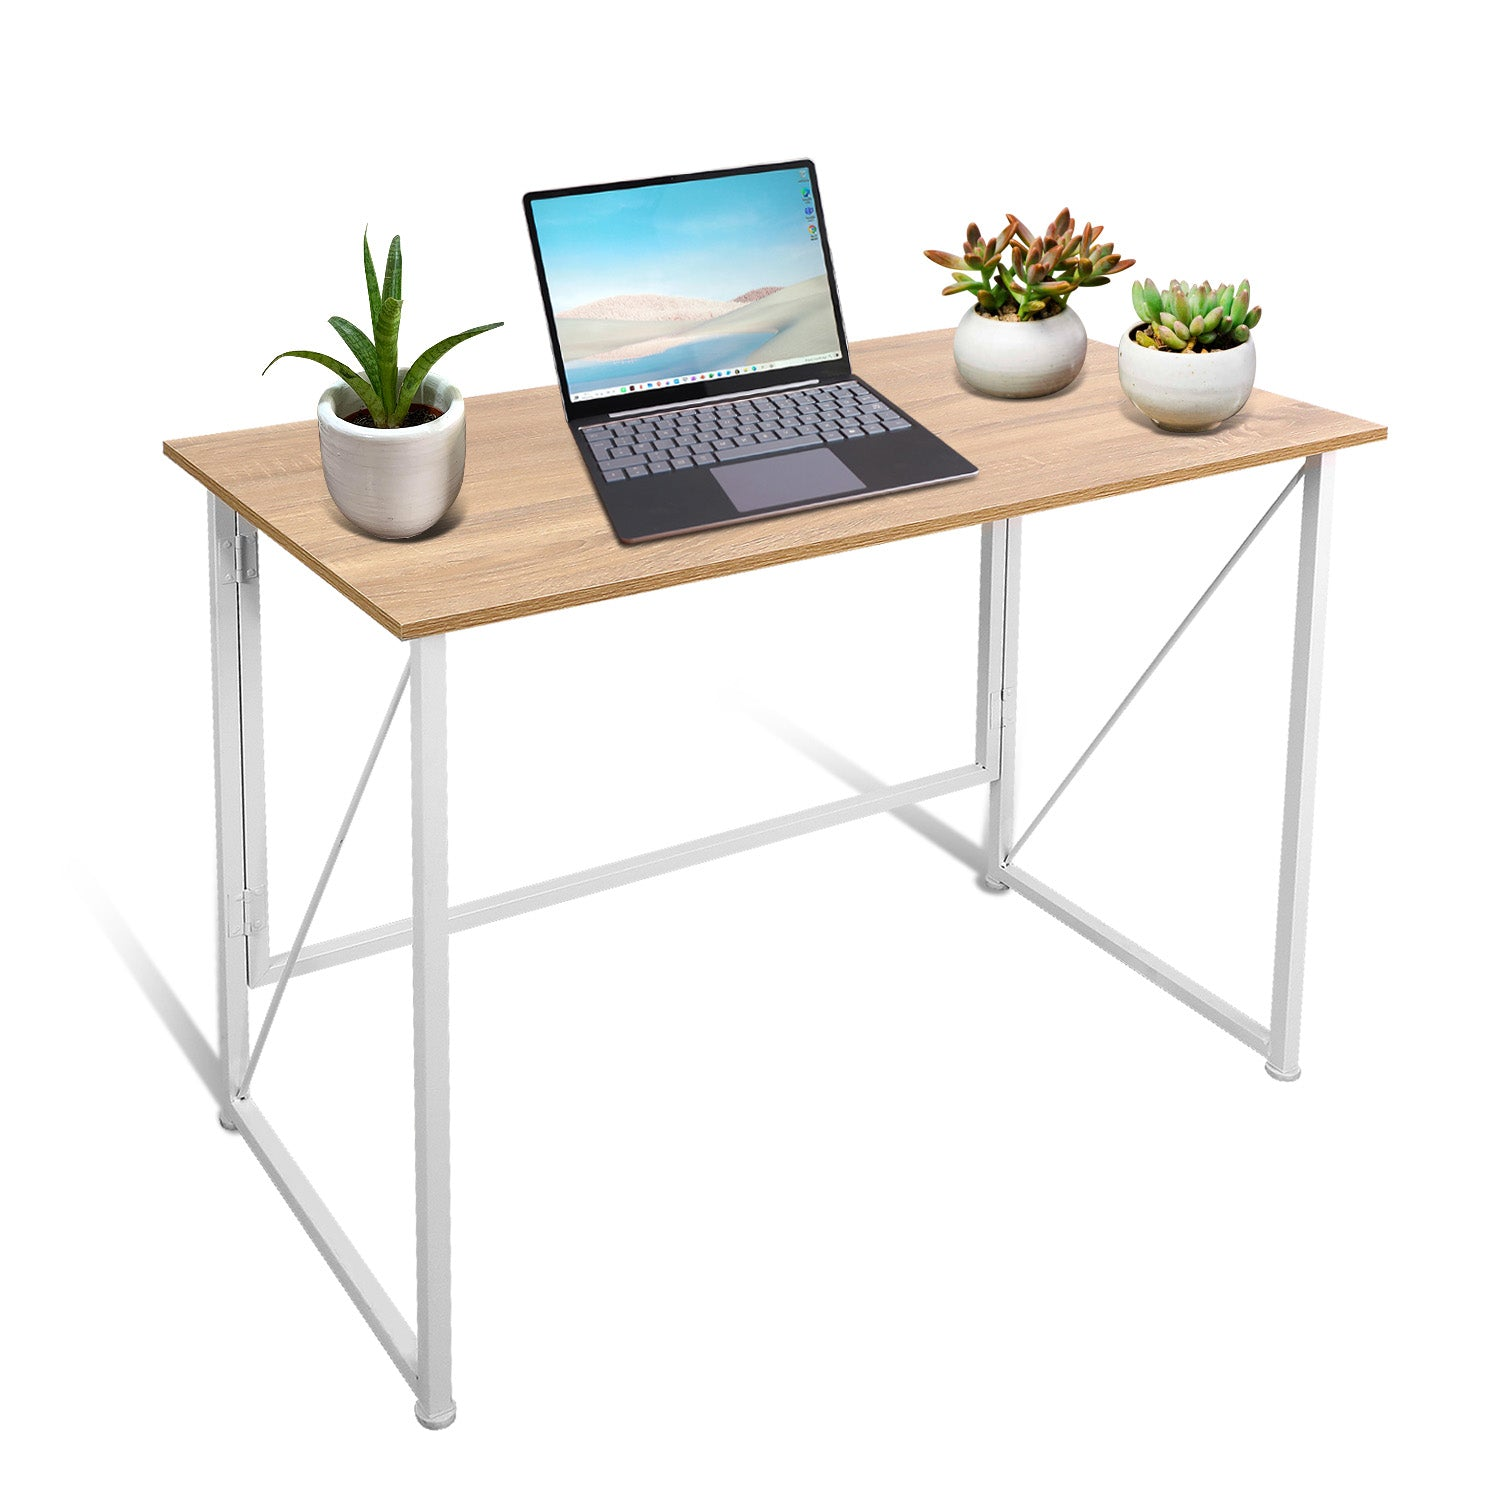 Tan Foldable Writing Computer Desk  40 inch